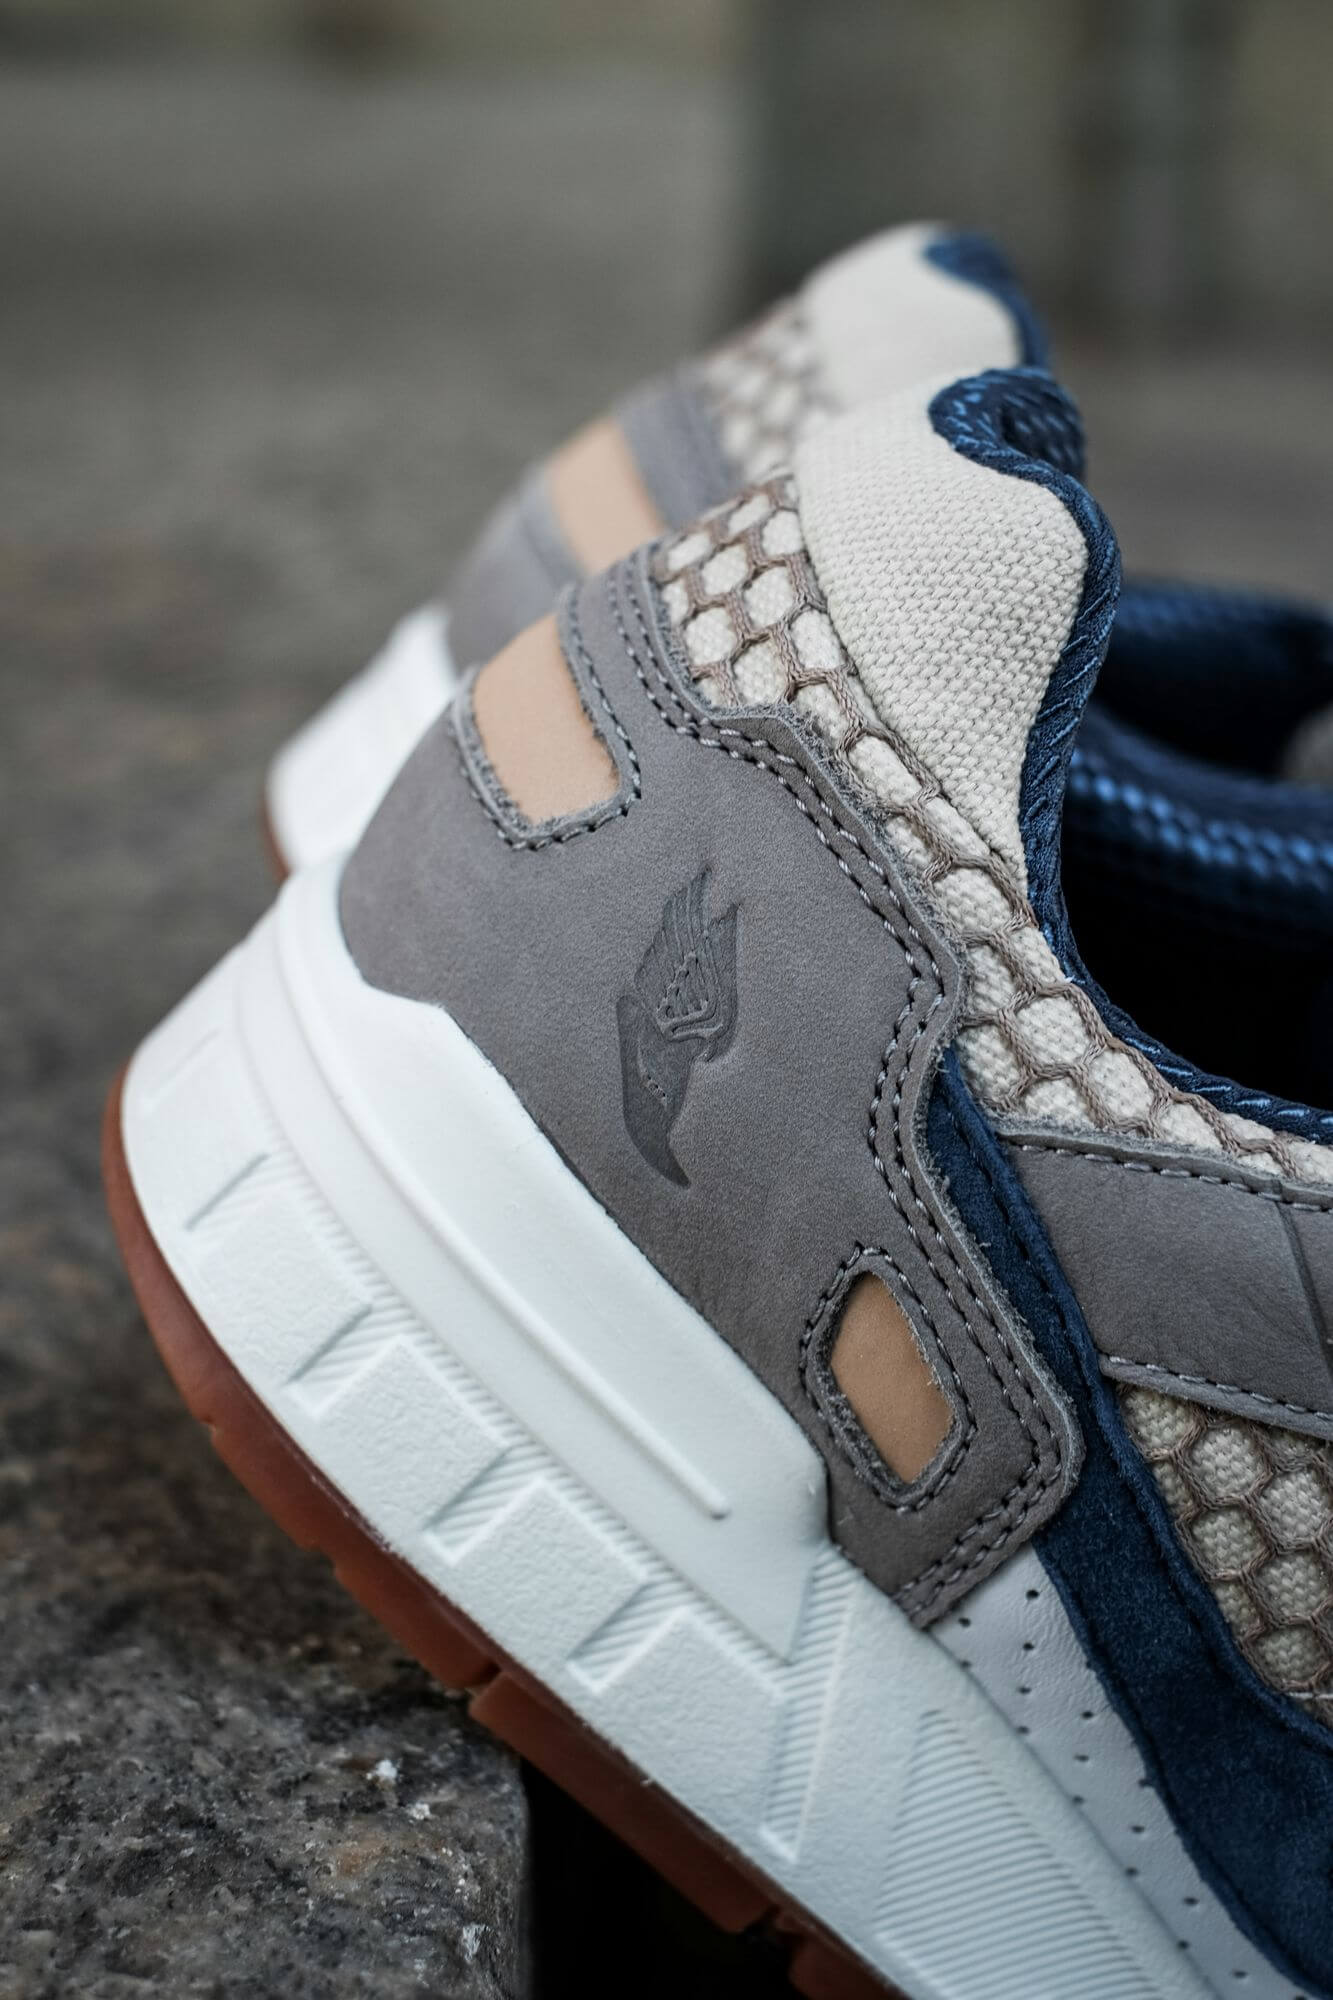 heel detail of the Saucony - Shadow 5000 - white/navy/grey - S70553-1